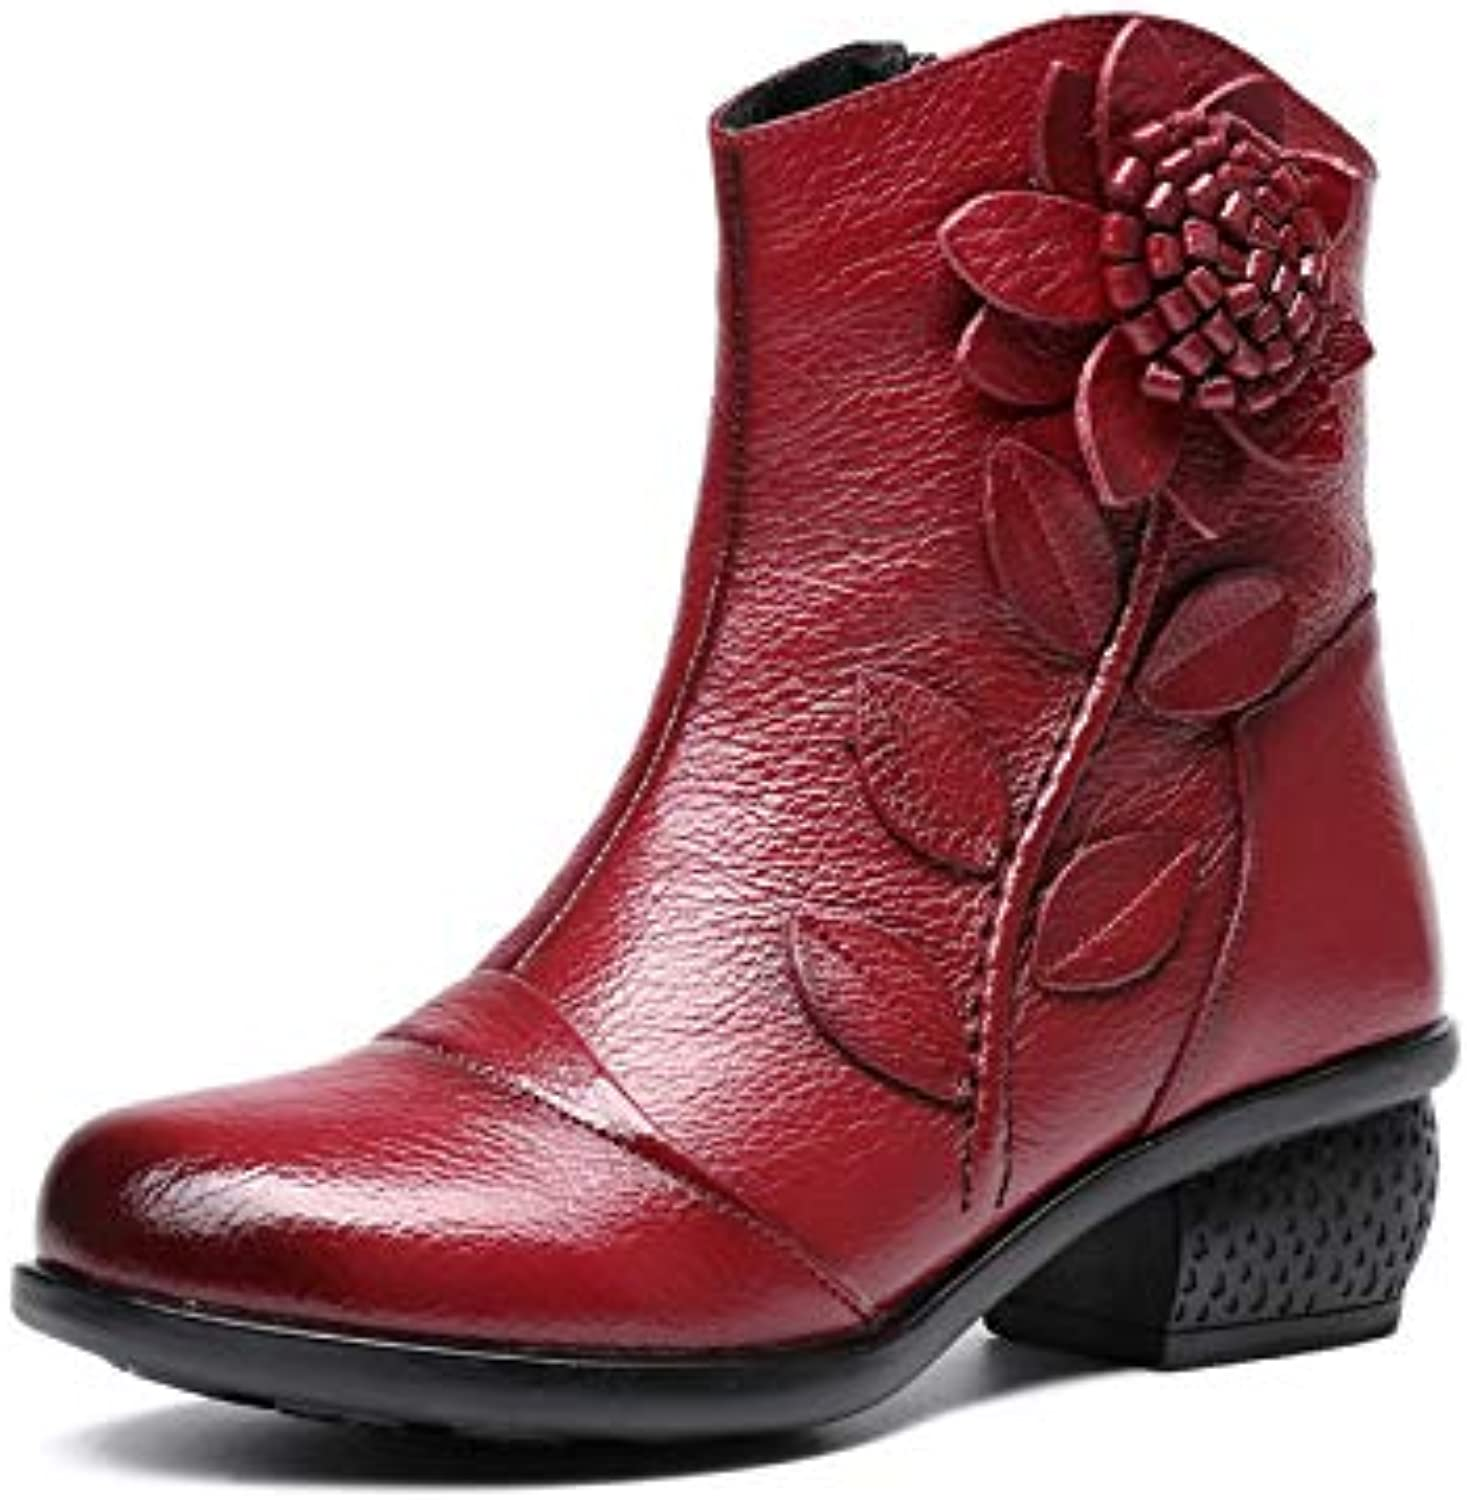 Leather Women Ankle Boots Zipper Leather Flower Block shoes (color   Red, Size   CA 6)